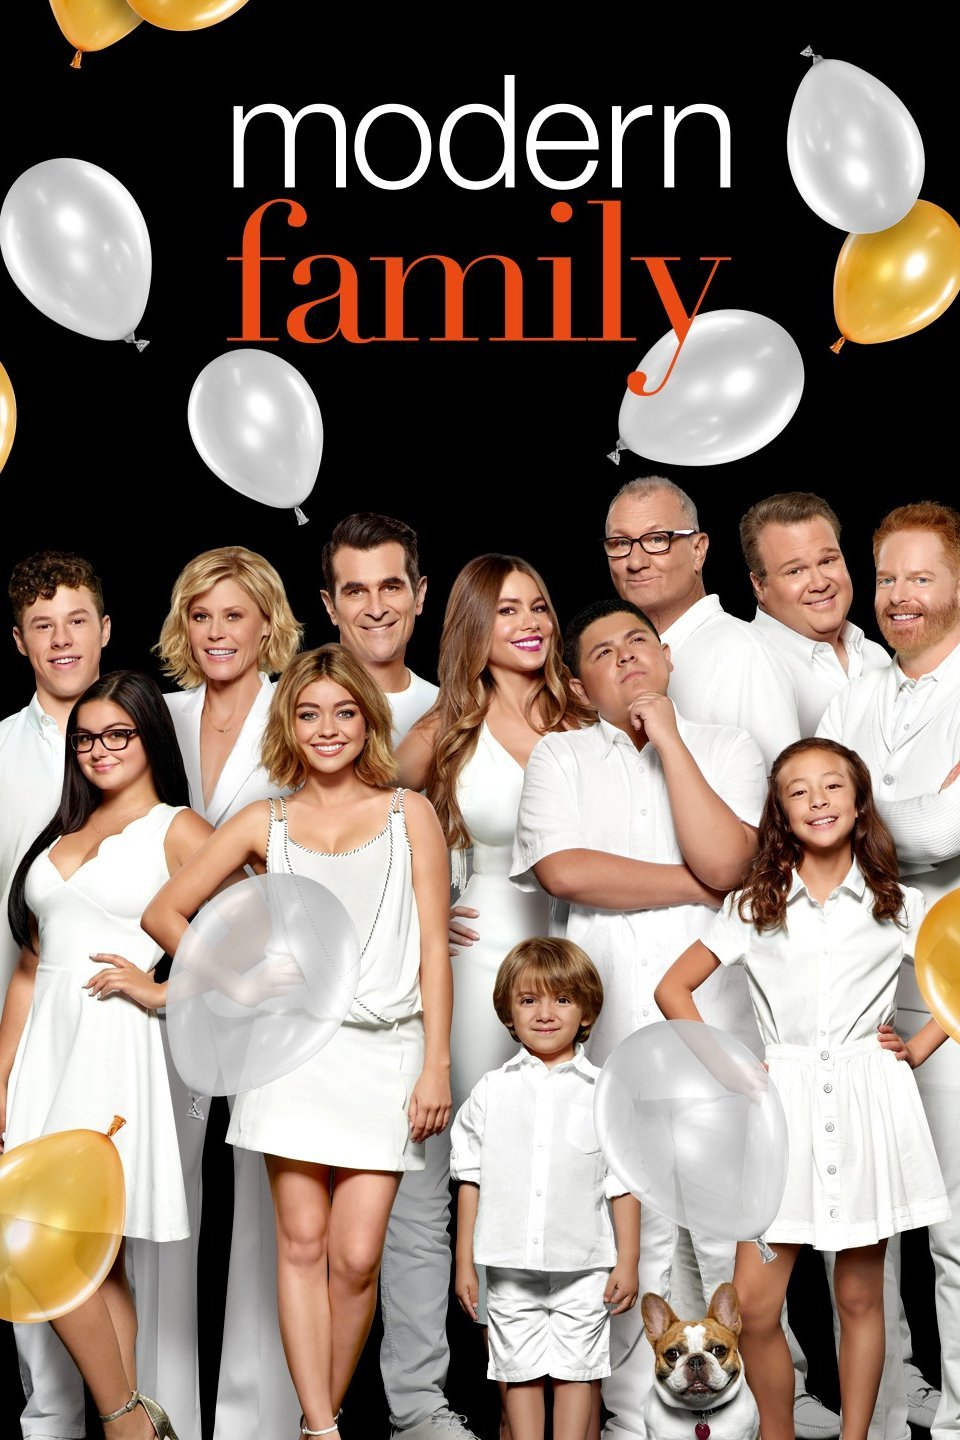 Modern Family Season 8 Episode 19 Download 480p WEB-DL 100MB